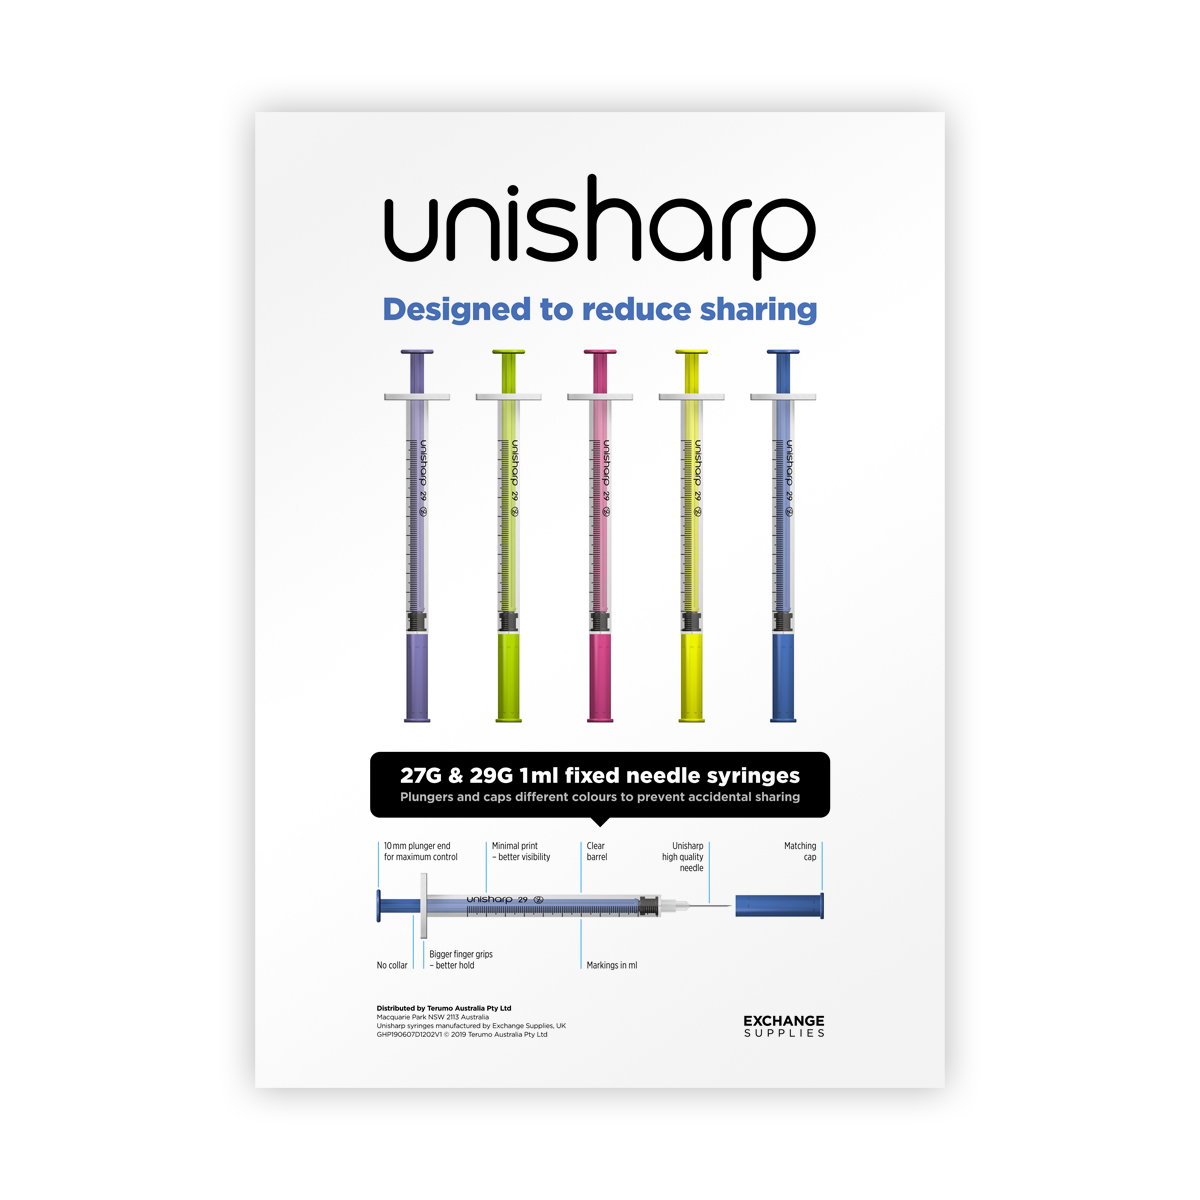 Unisharp fixed A4 Poster